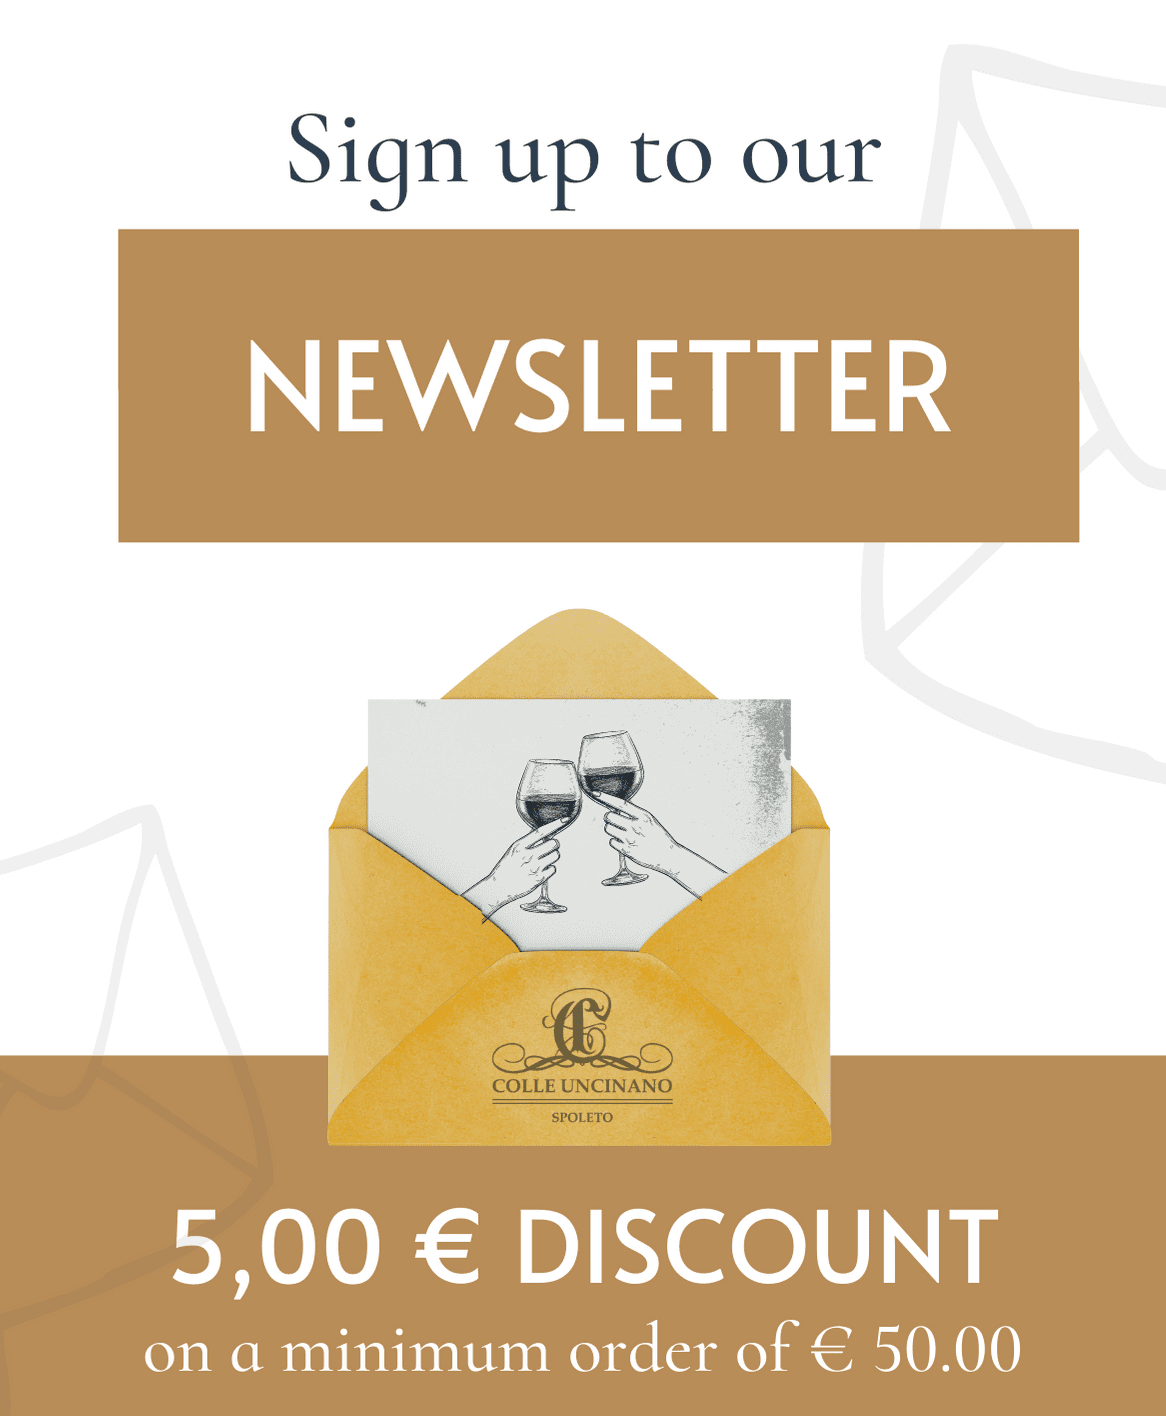 sign up to our newsletter, for you immediately a 5 € discount on a minimum order of 50 €